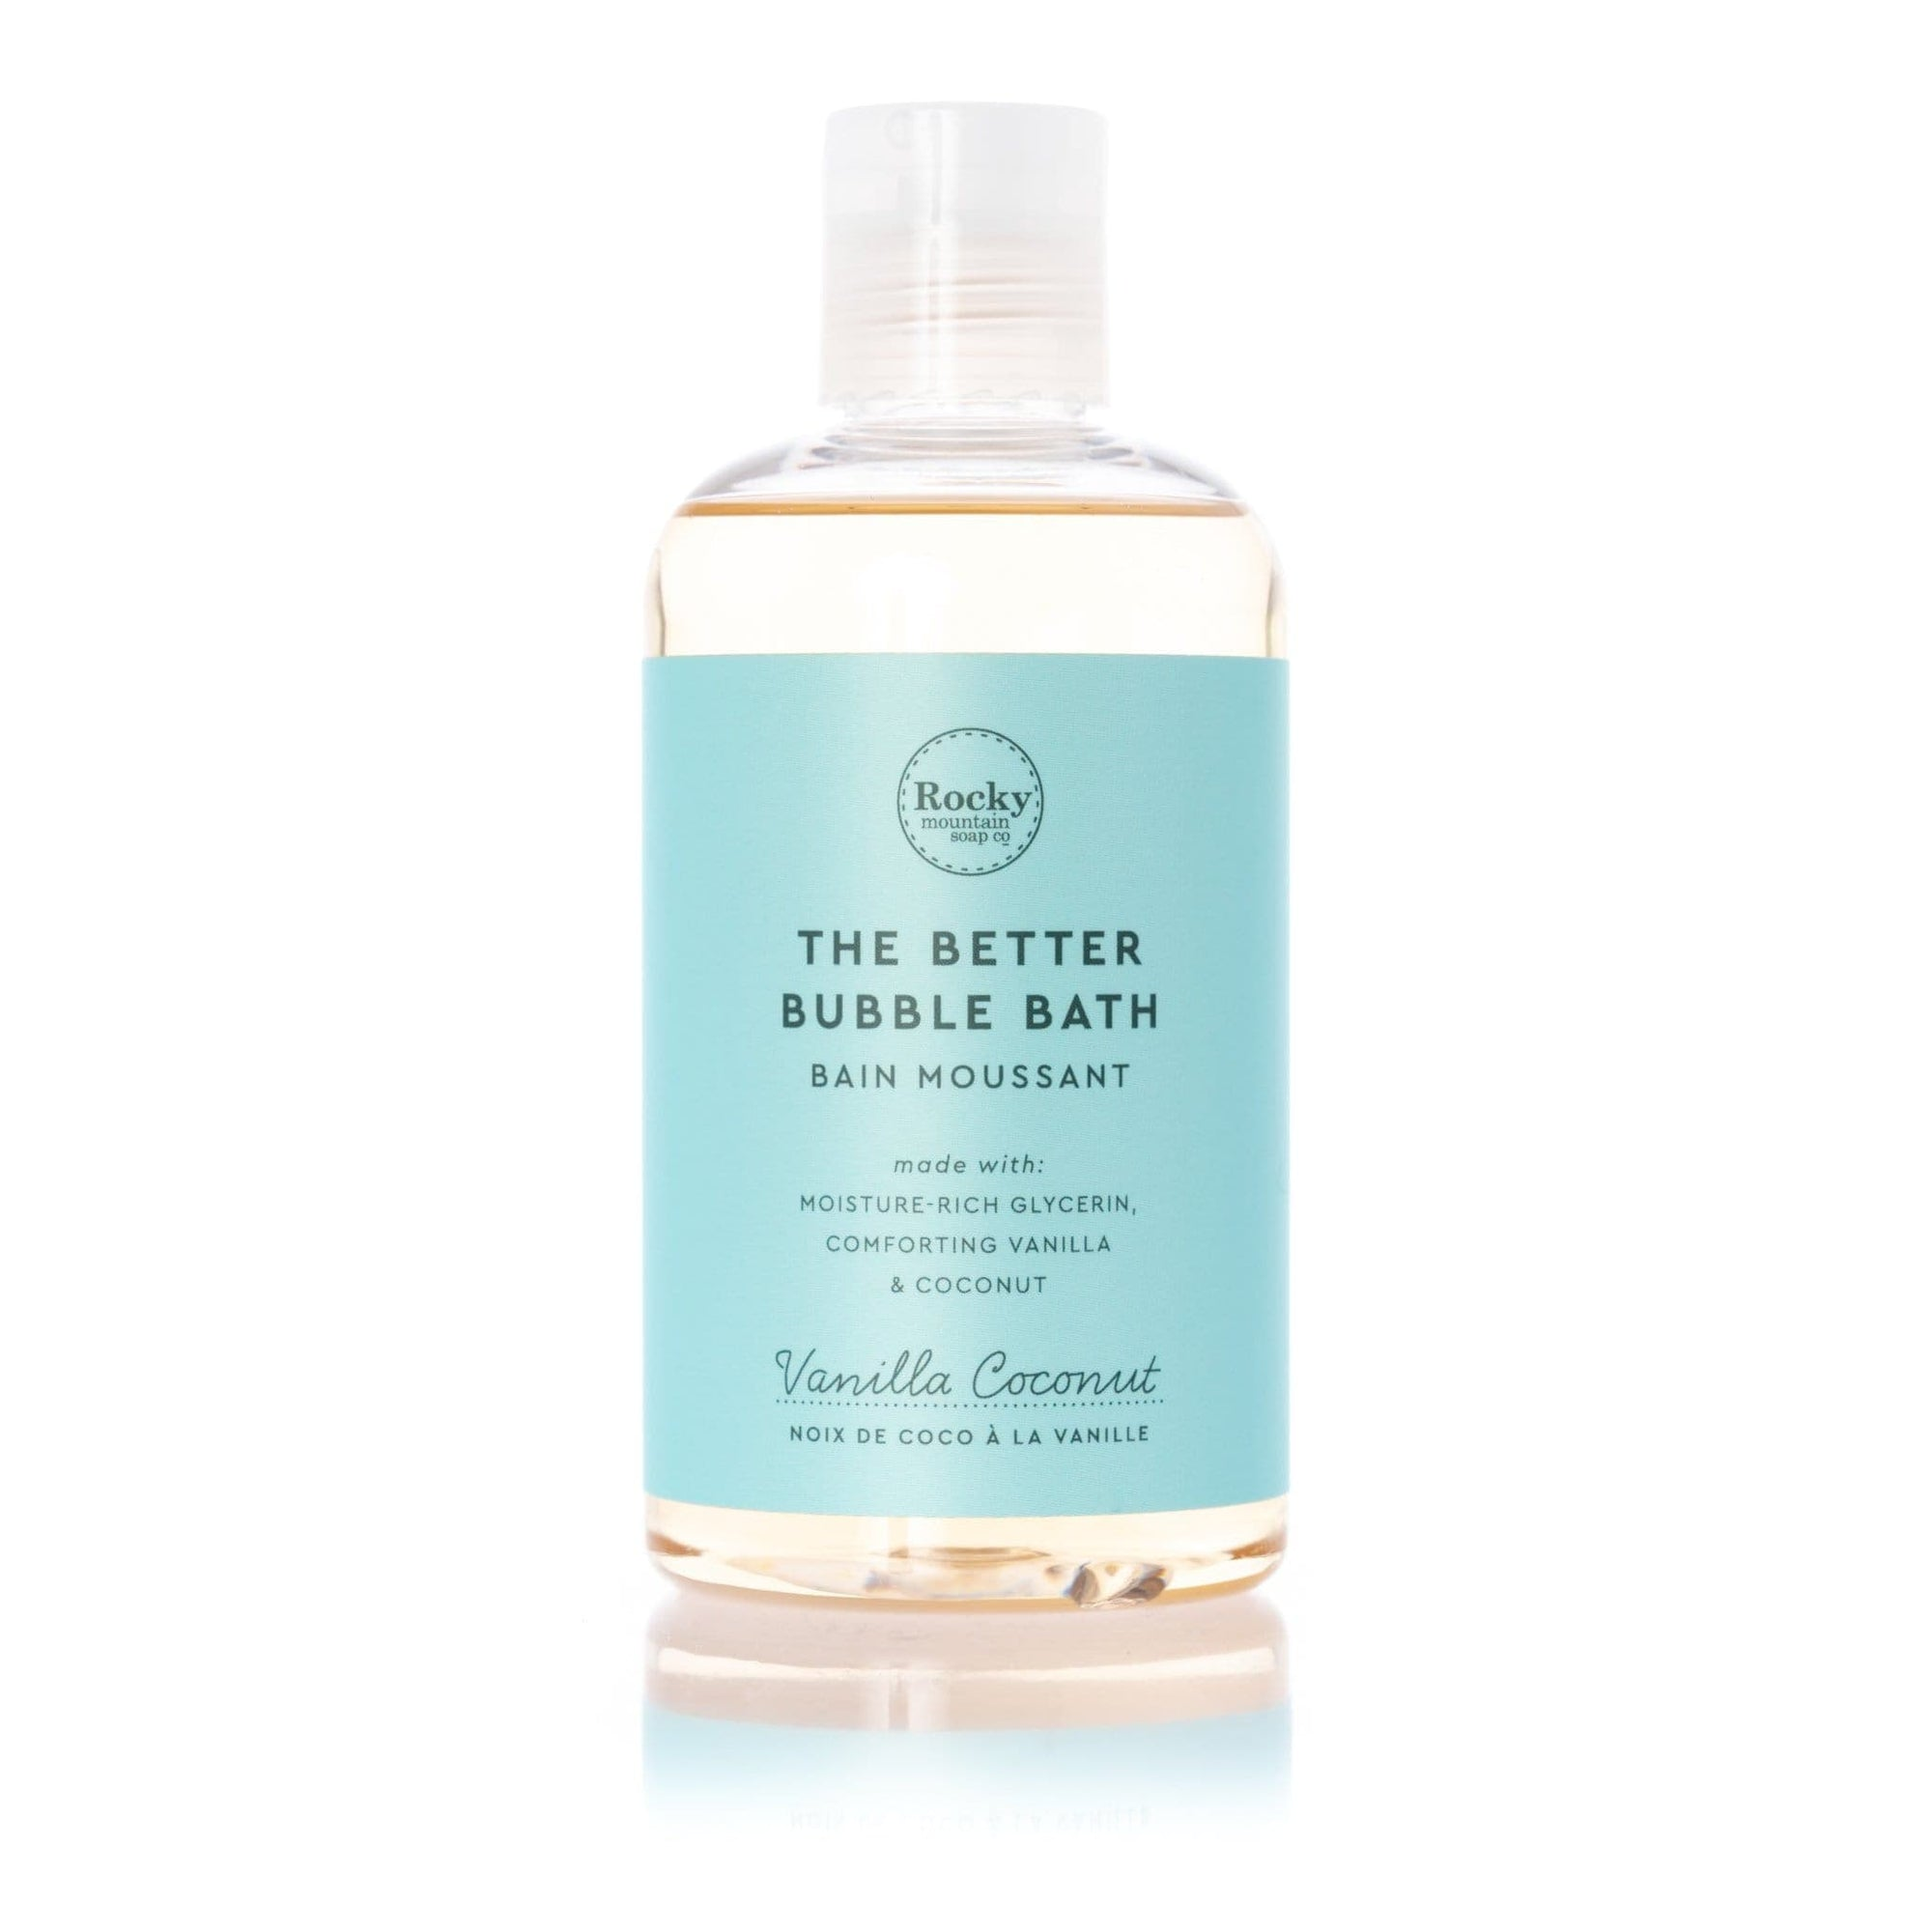 The Better Bubble Bath - Vanilla Coconut